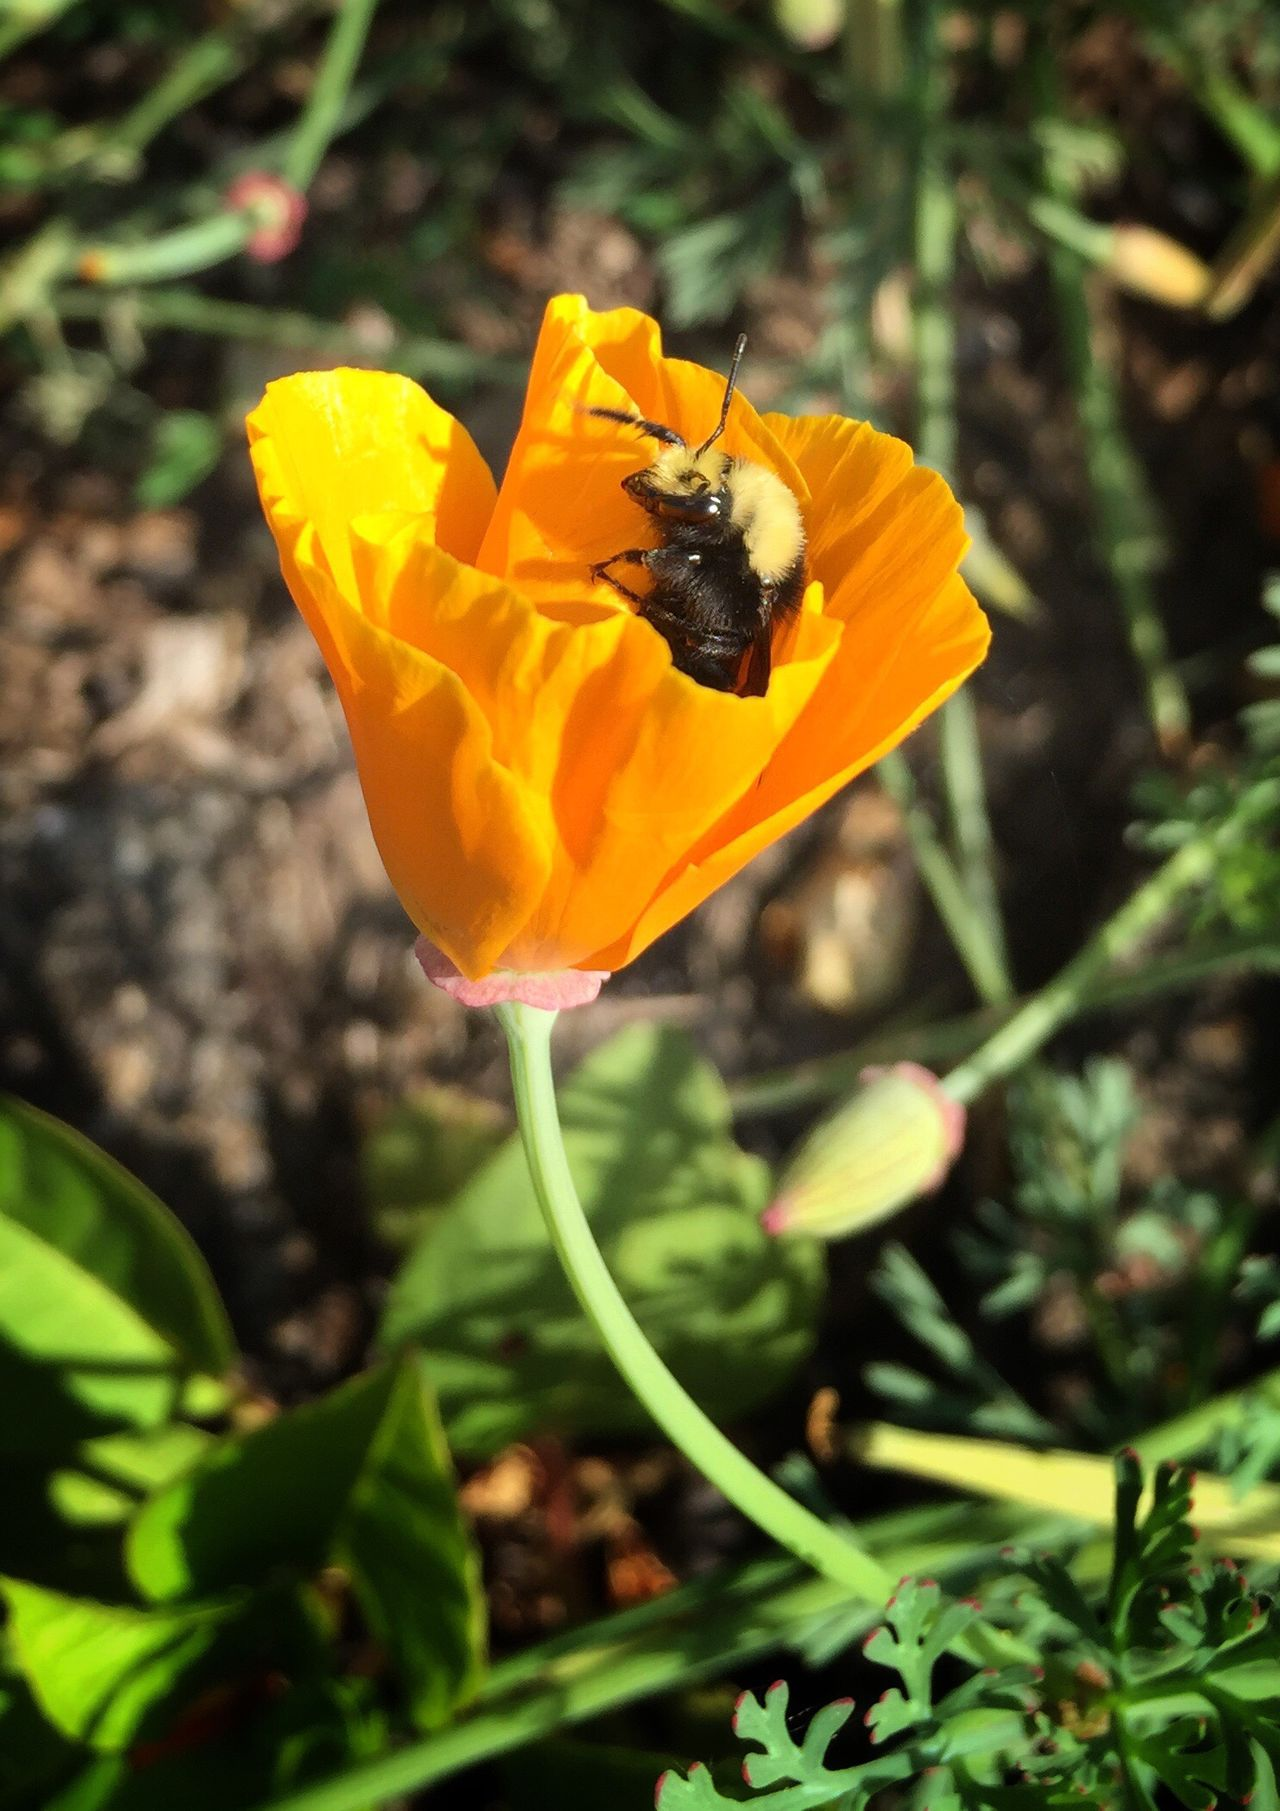 California Poppy Poppy Flower Flowerporn Orange Bee Bumblebee Focus On Foreground Nature Nature_collection Beauty In Nature Beautiful Nature Flower Collection Insect Close Up Streamzoofamily IPhoneography Blossom Blooming Summertime